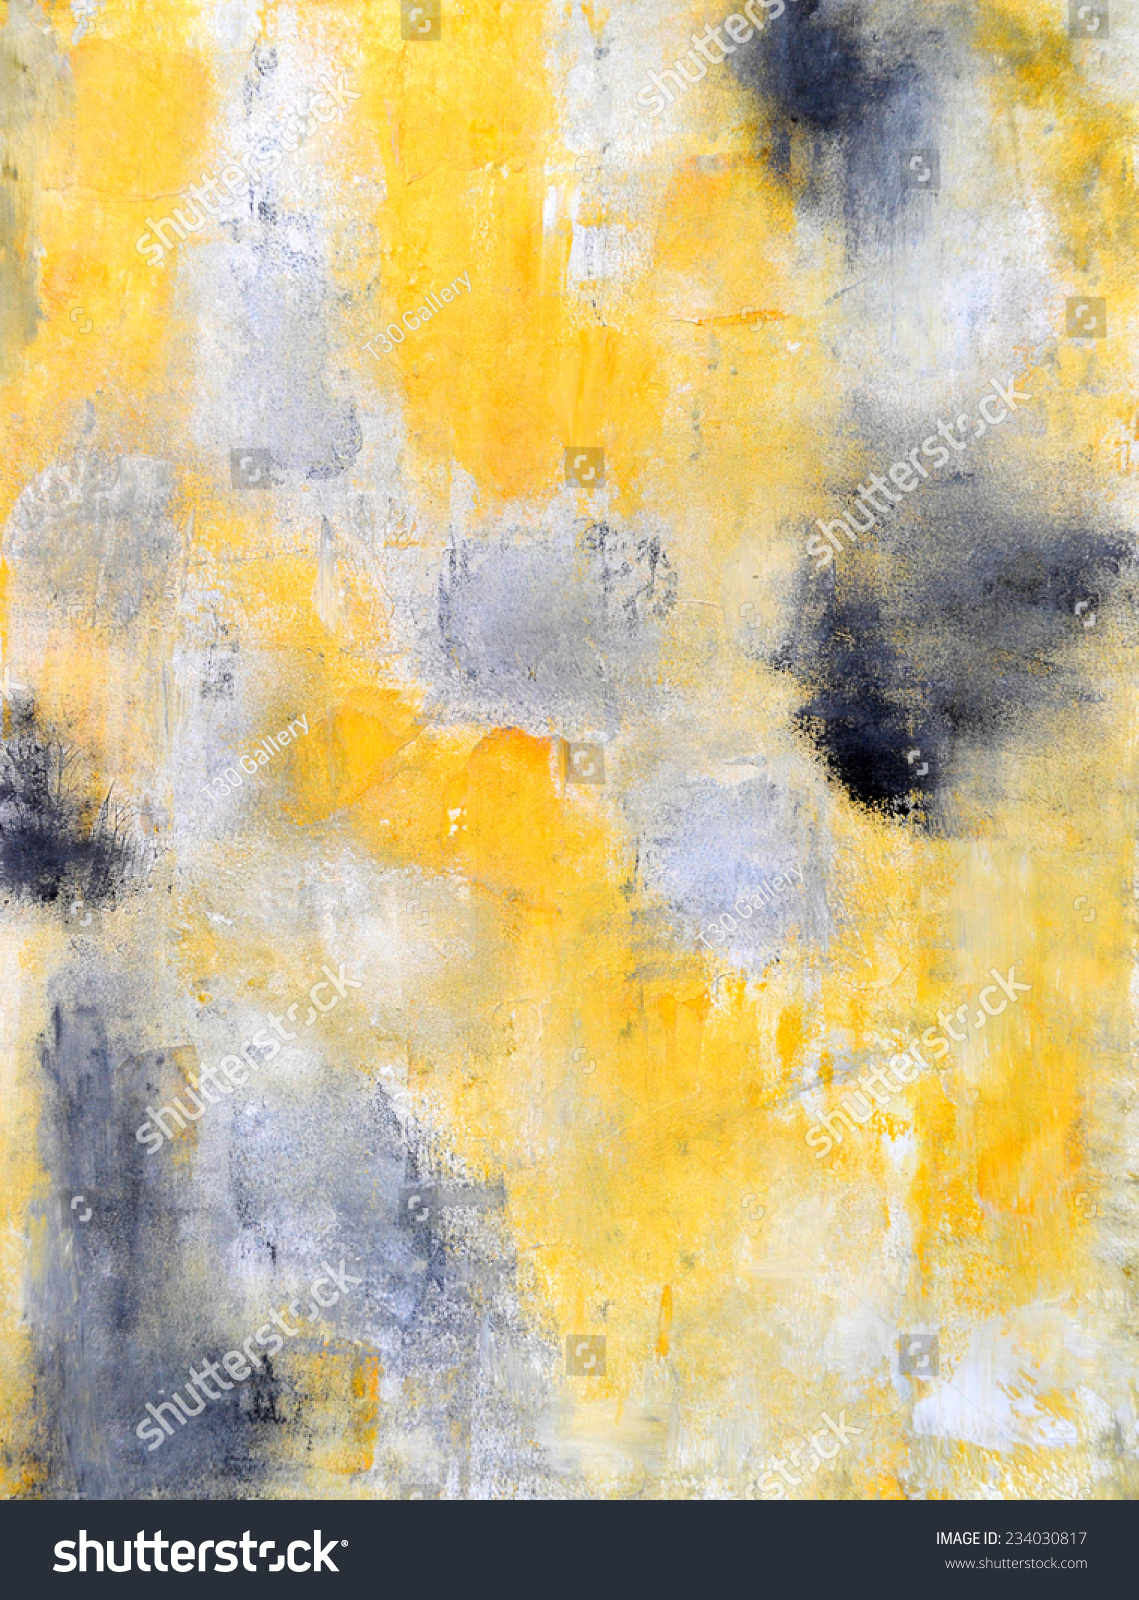 Black And Yellow Abstract Art Painting Stock Photo ... Yellow Black Abstract Paintings